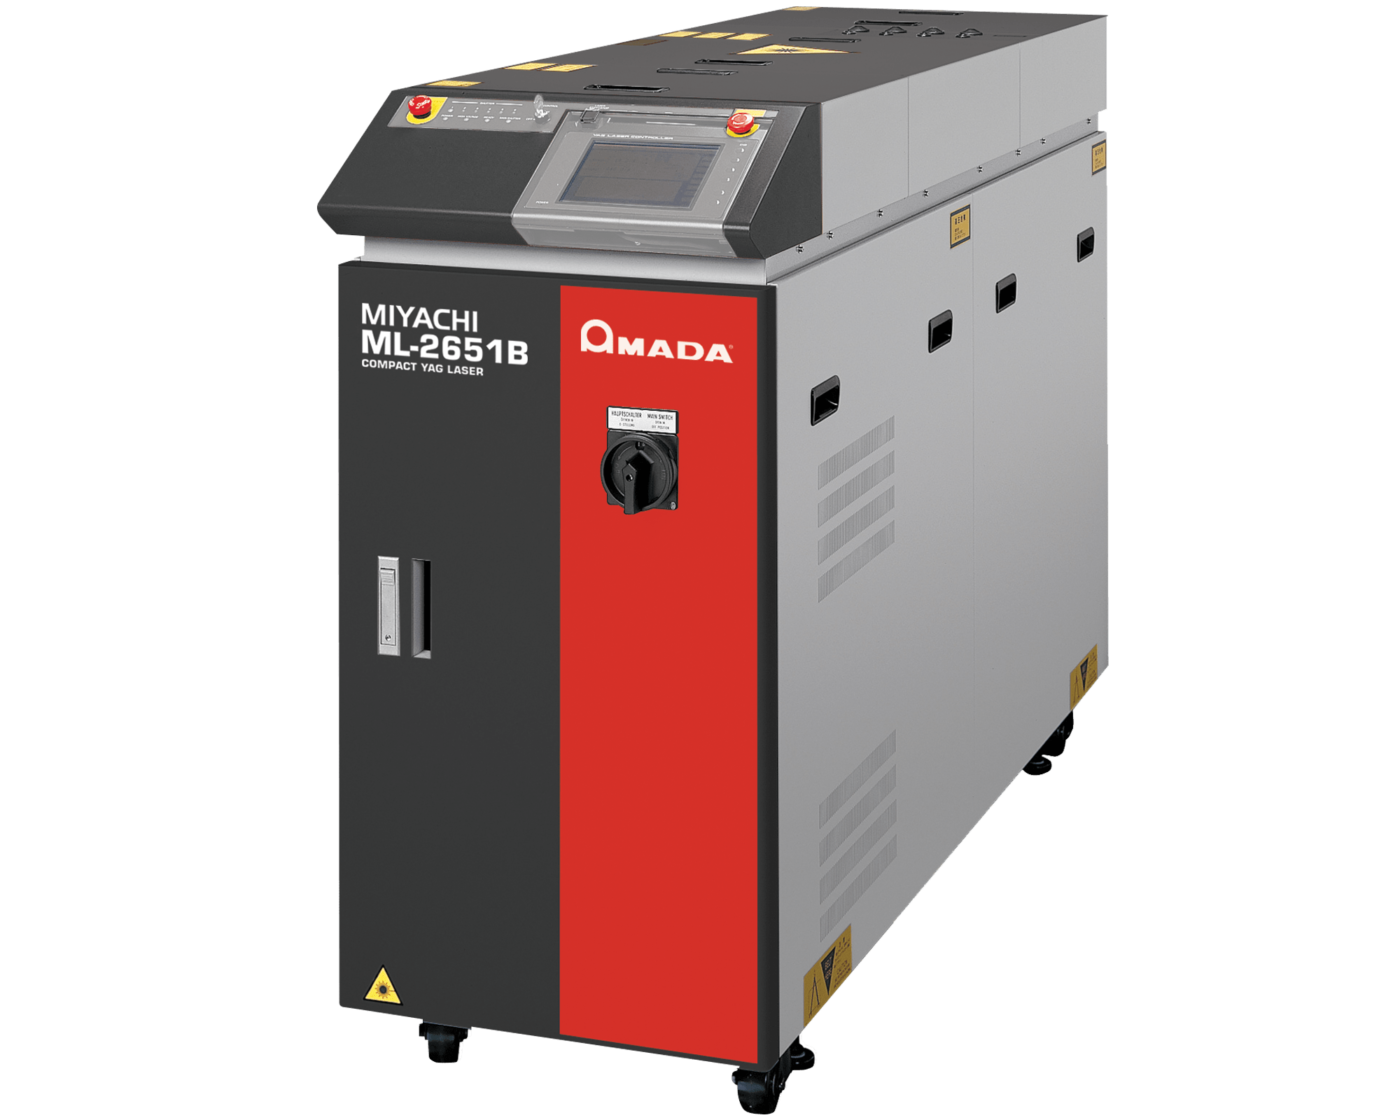 ML-2651B Nd:YAG <br>Laser Welder - 500 W</br>